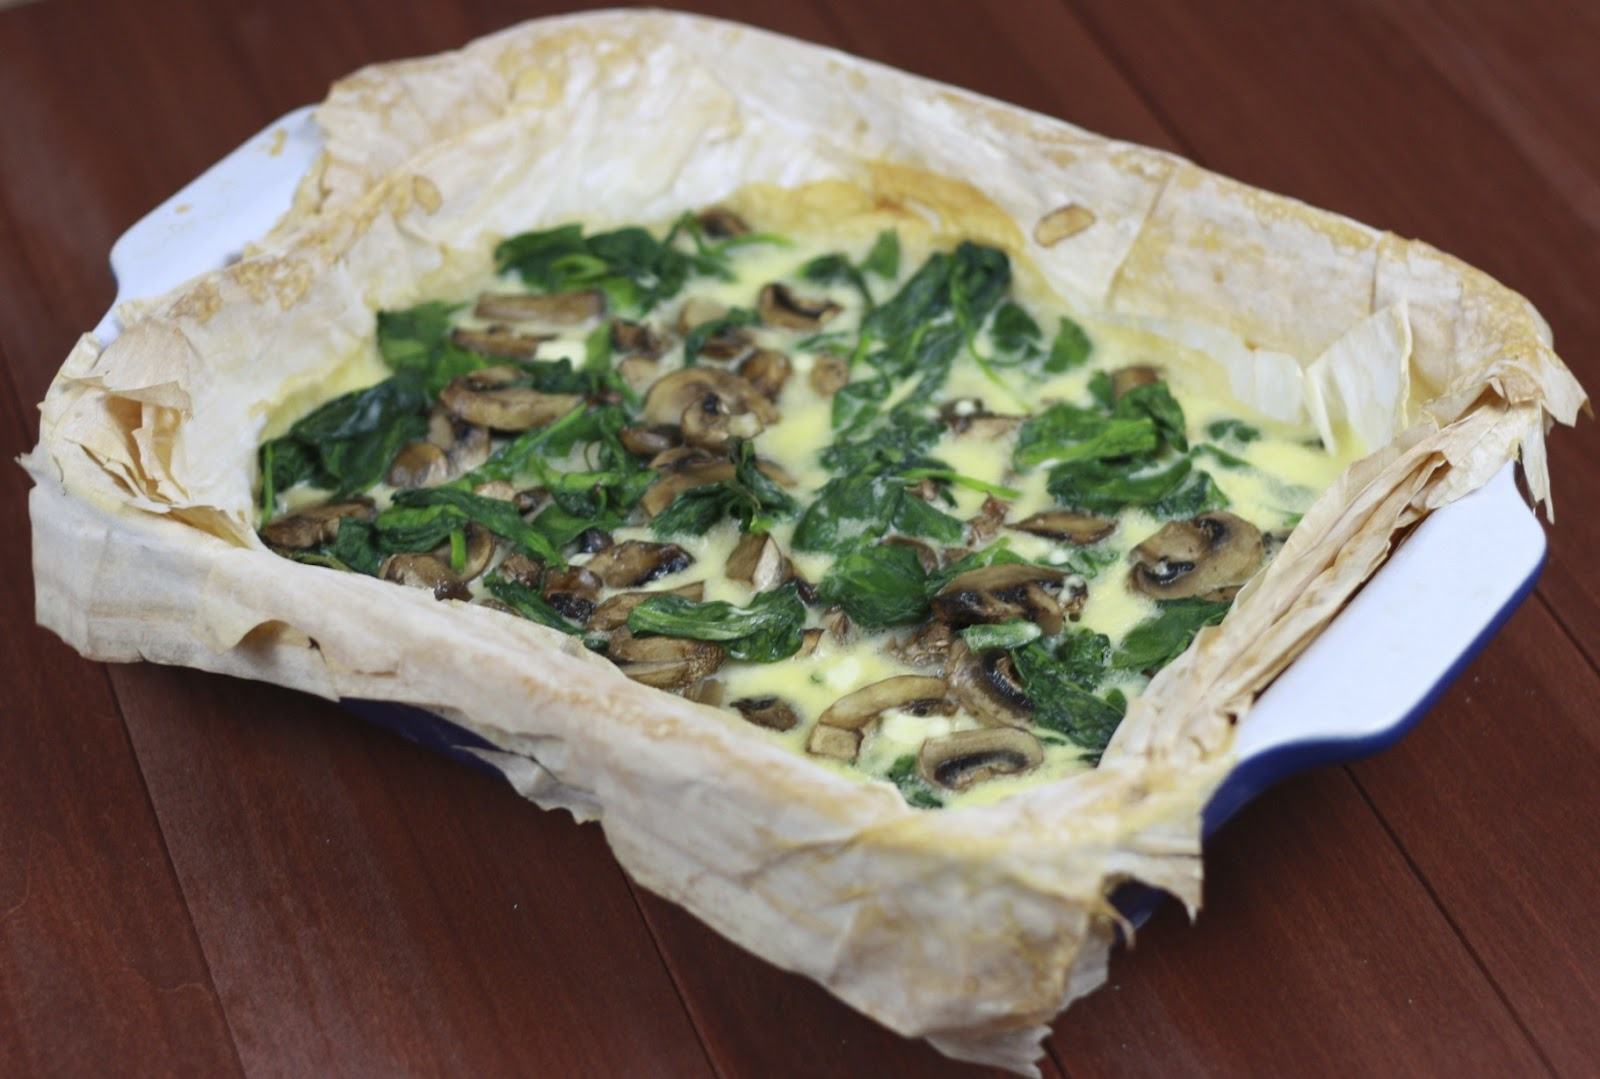 Mushroom, Spinach, and Scallion Tart with Goat Cheese